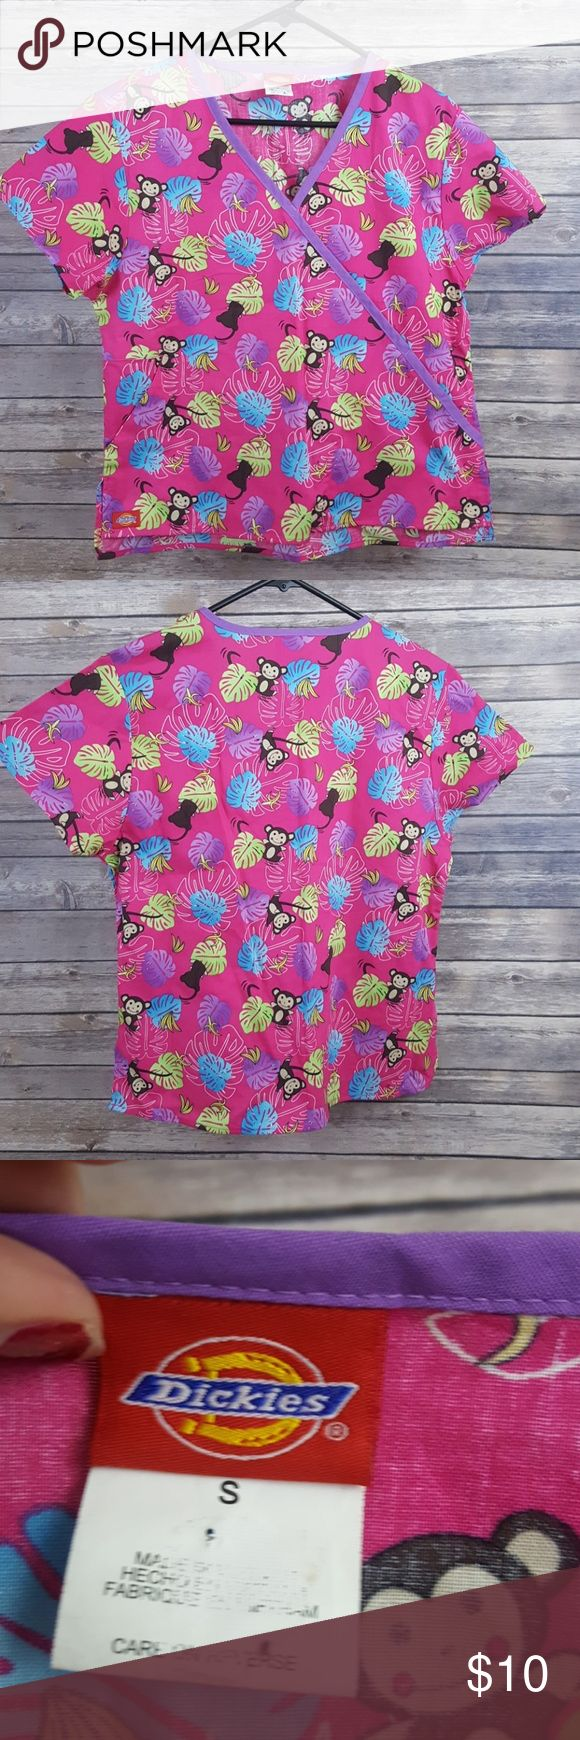 Dickies medical scrubs top with monkies Dickies medical scrub top with monkeys and bananas on them like new condition size small Dickies Tops